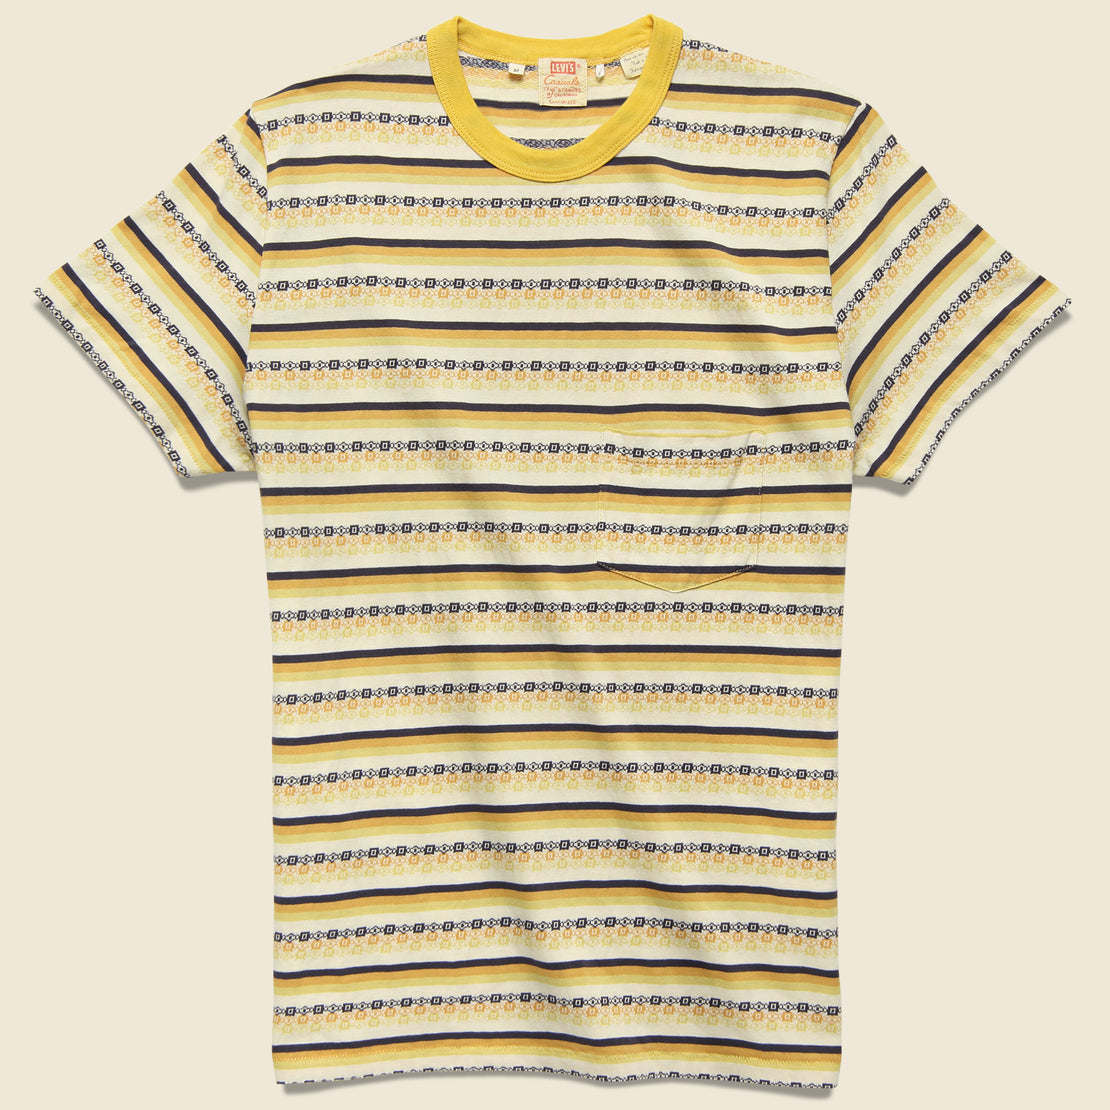 Levis Vintage Clothing 1960s Casual Stripe Tee - Custard Stripe Jacquard